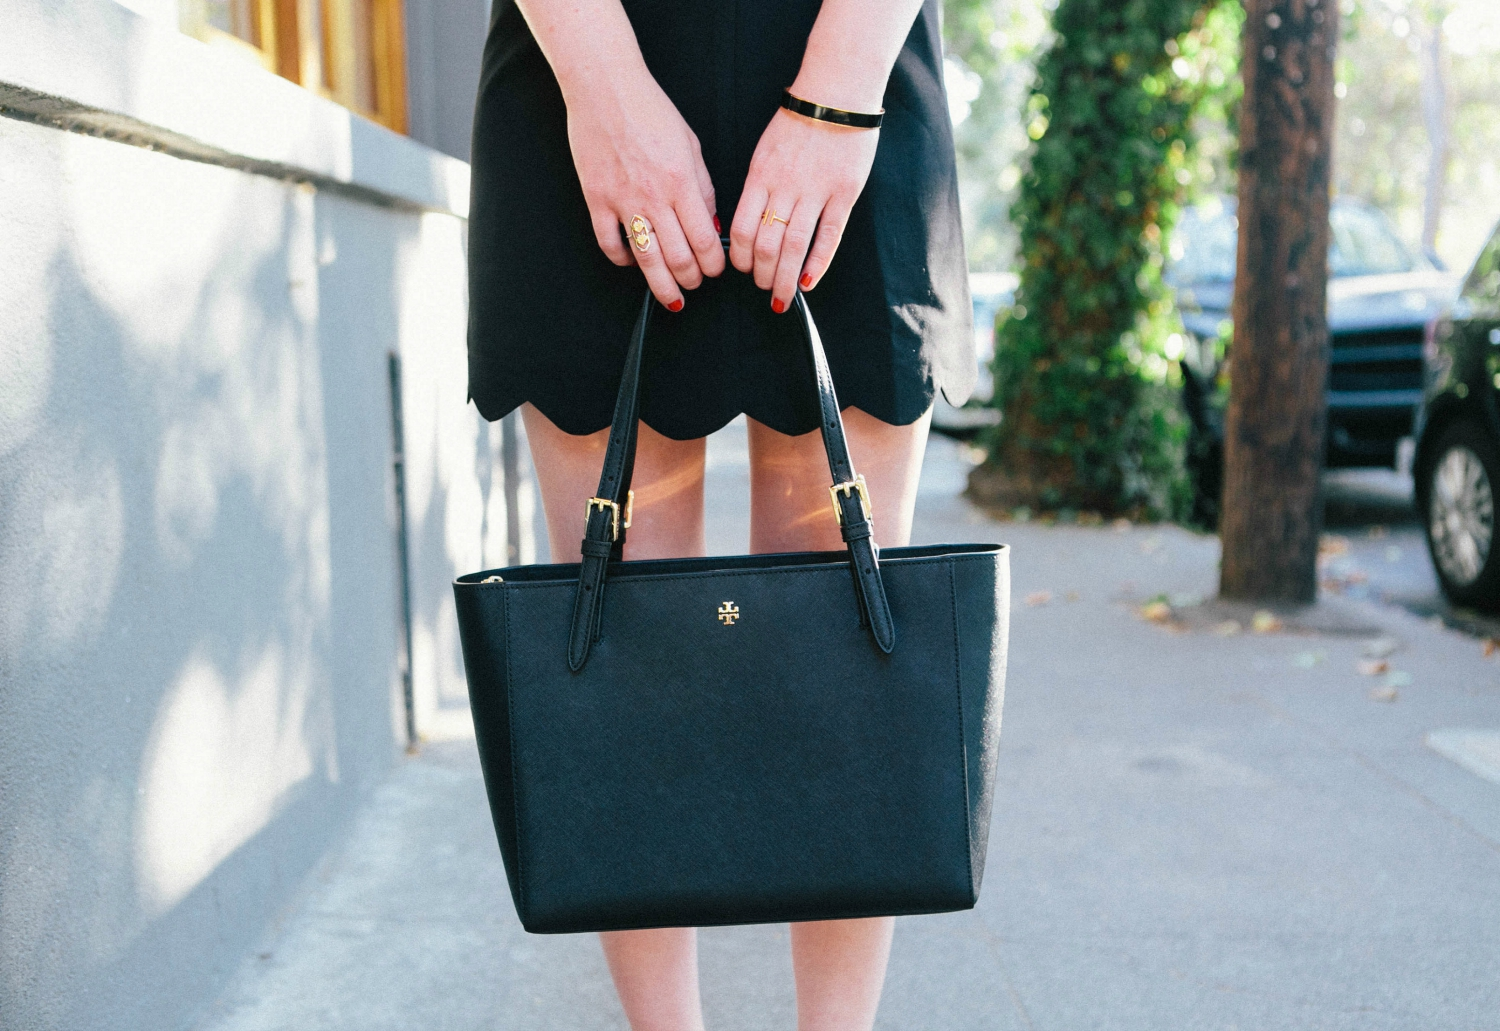 Tory Burch Tote with Scalloped Skirt.